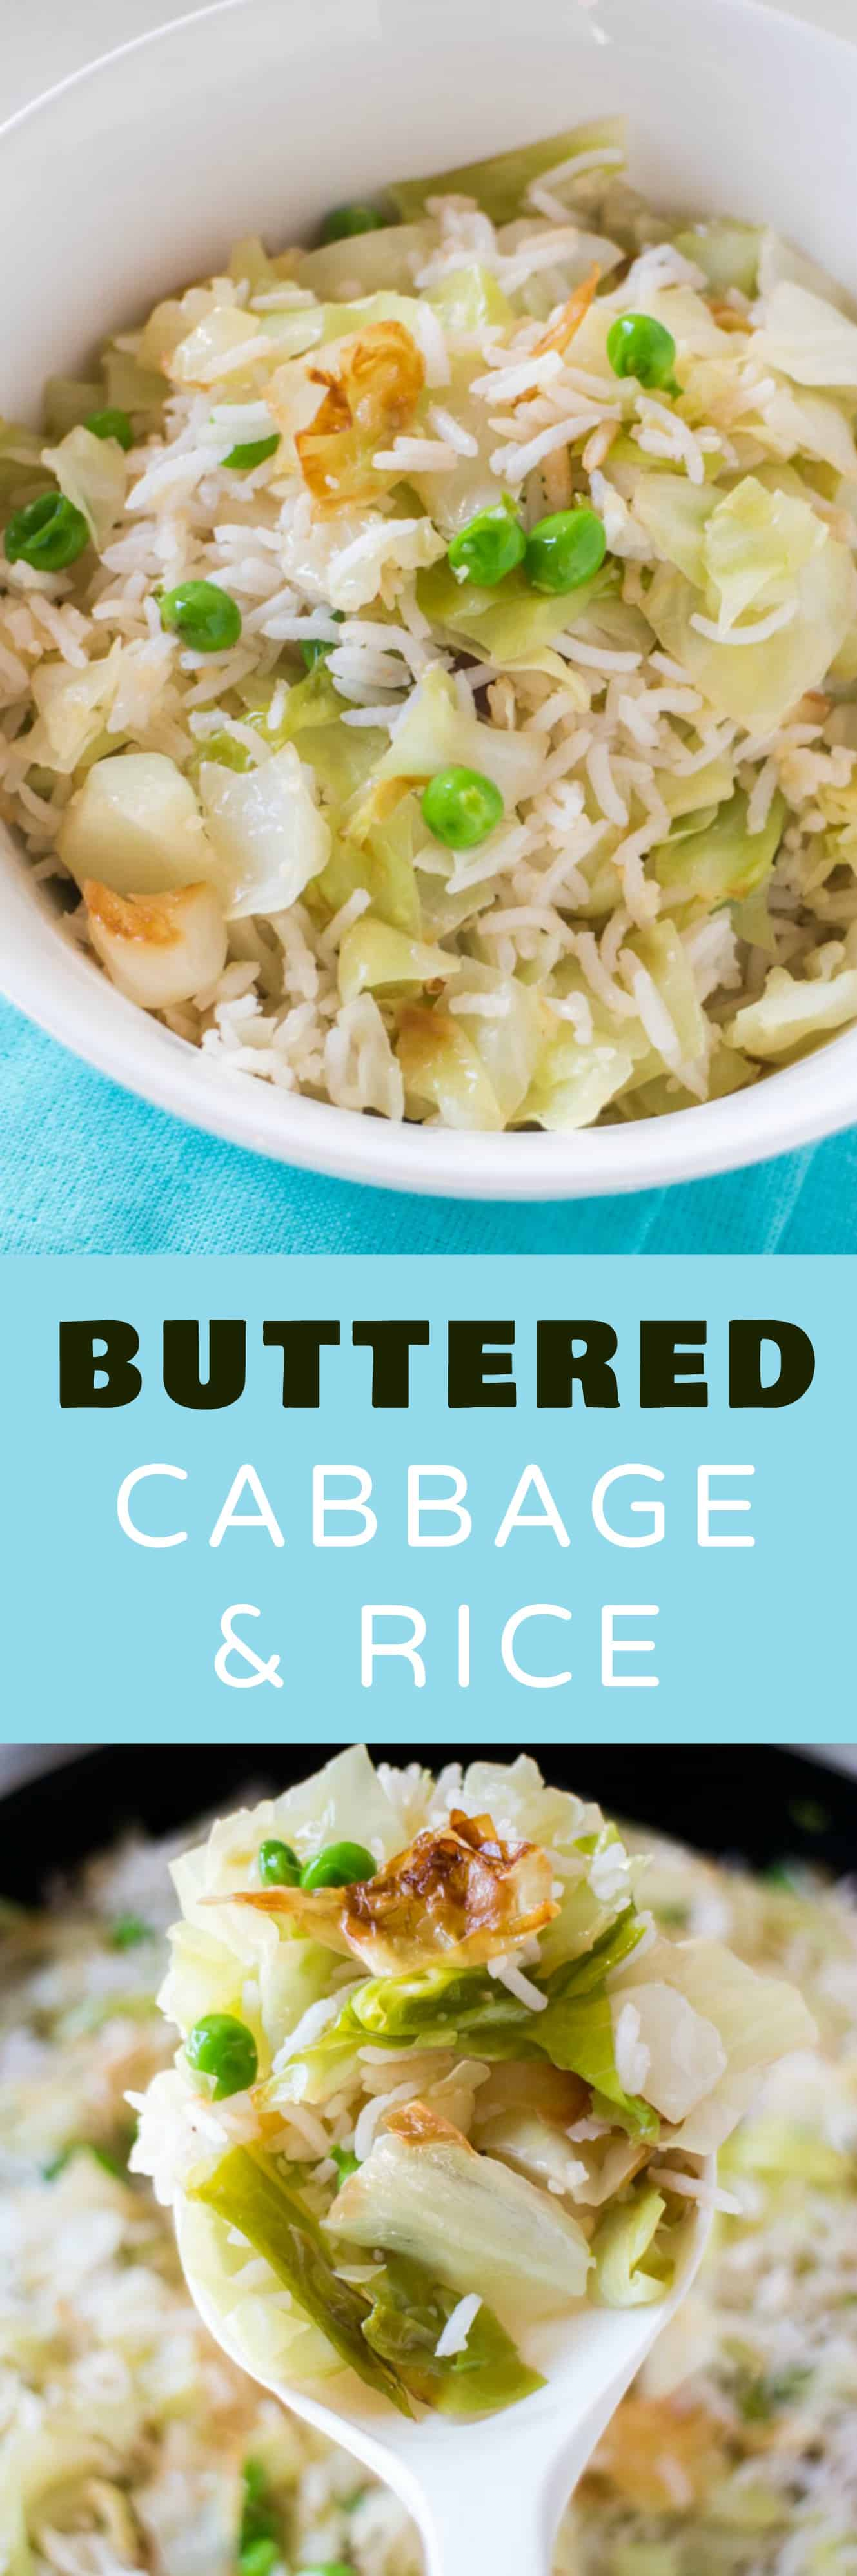 EASY Buttered Rice and Cabbage dinner! This is one of the best buttered cabbage recipes!  This dish uses cooked cabbage and is ready in 20 minutes!  It's a healthy vegetarian rice meal my entire family loves!